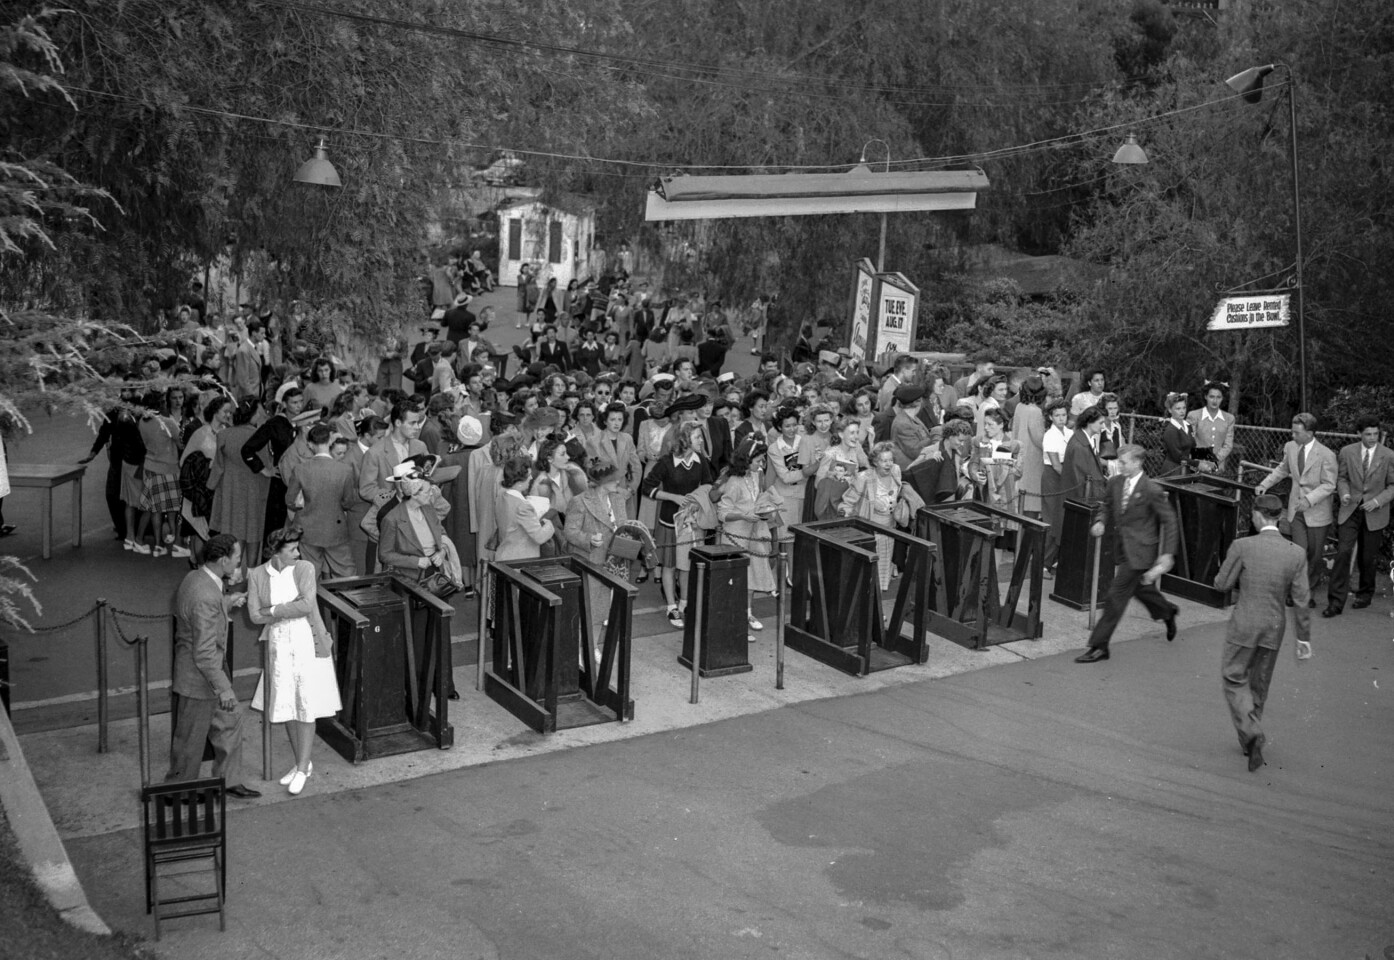 Aug. 14, 1943: Arrival of crowd at Hollywood Bowl for Frank Sinatra performance.